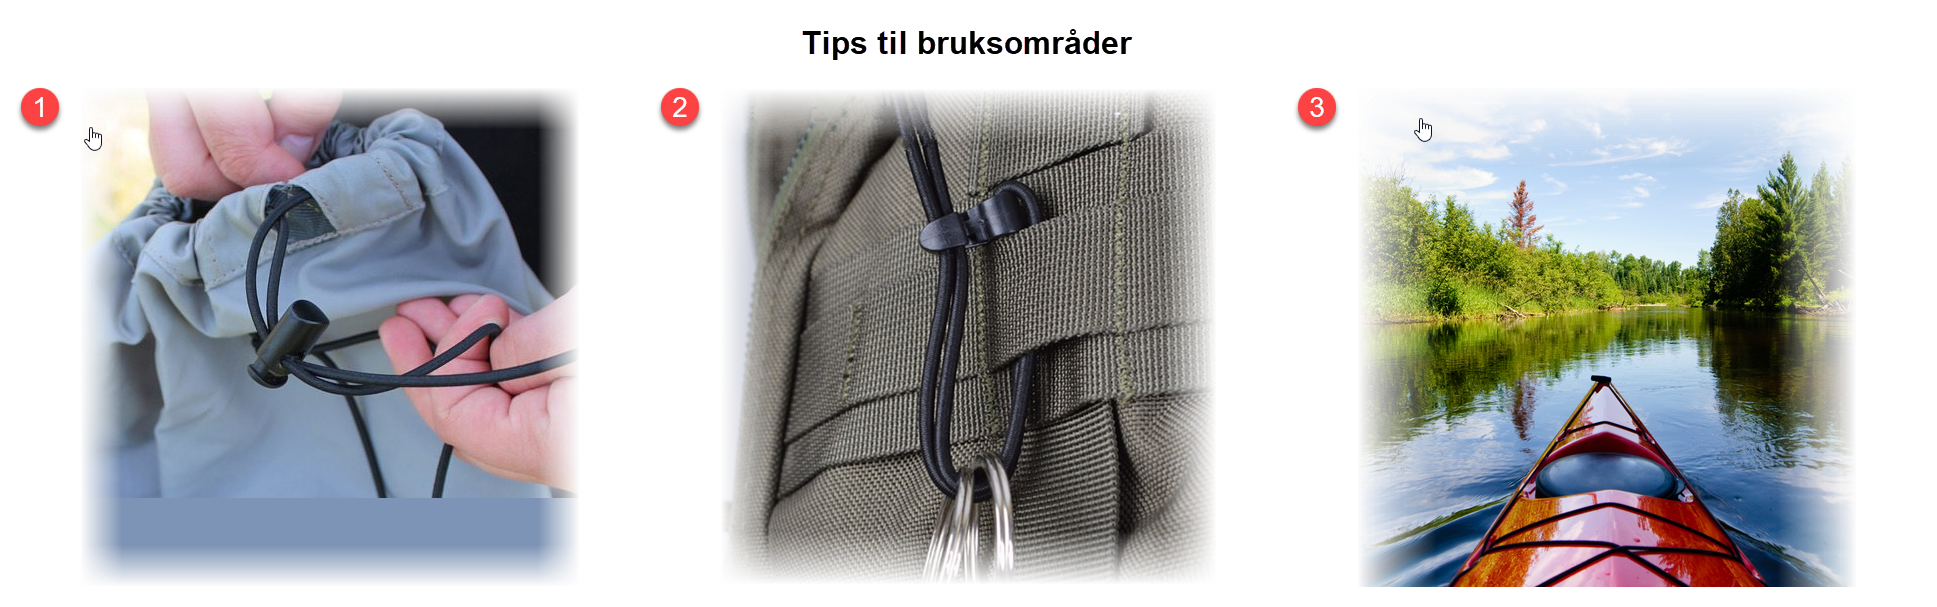 Tips til bruksområder Shockcord